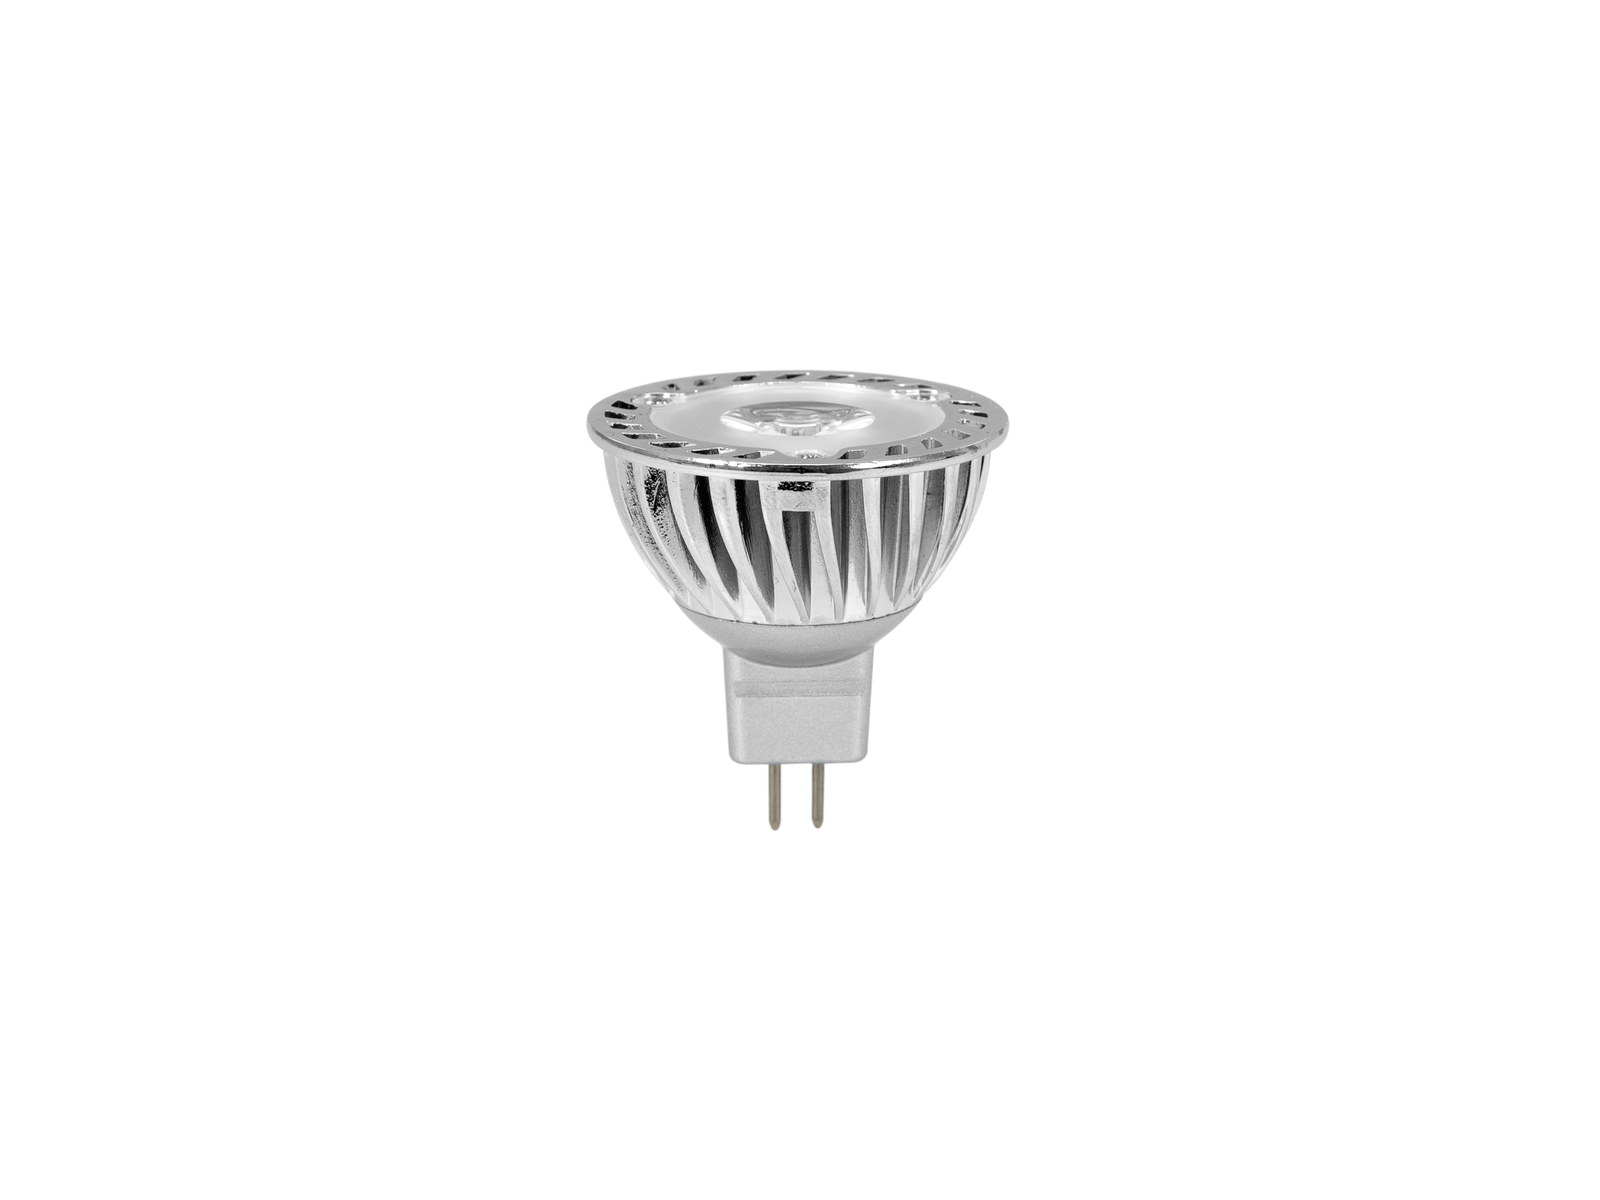 OMNILUX MR-16 12V GU-5.3 LED 3W 3000K